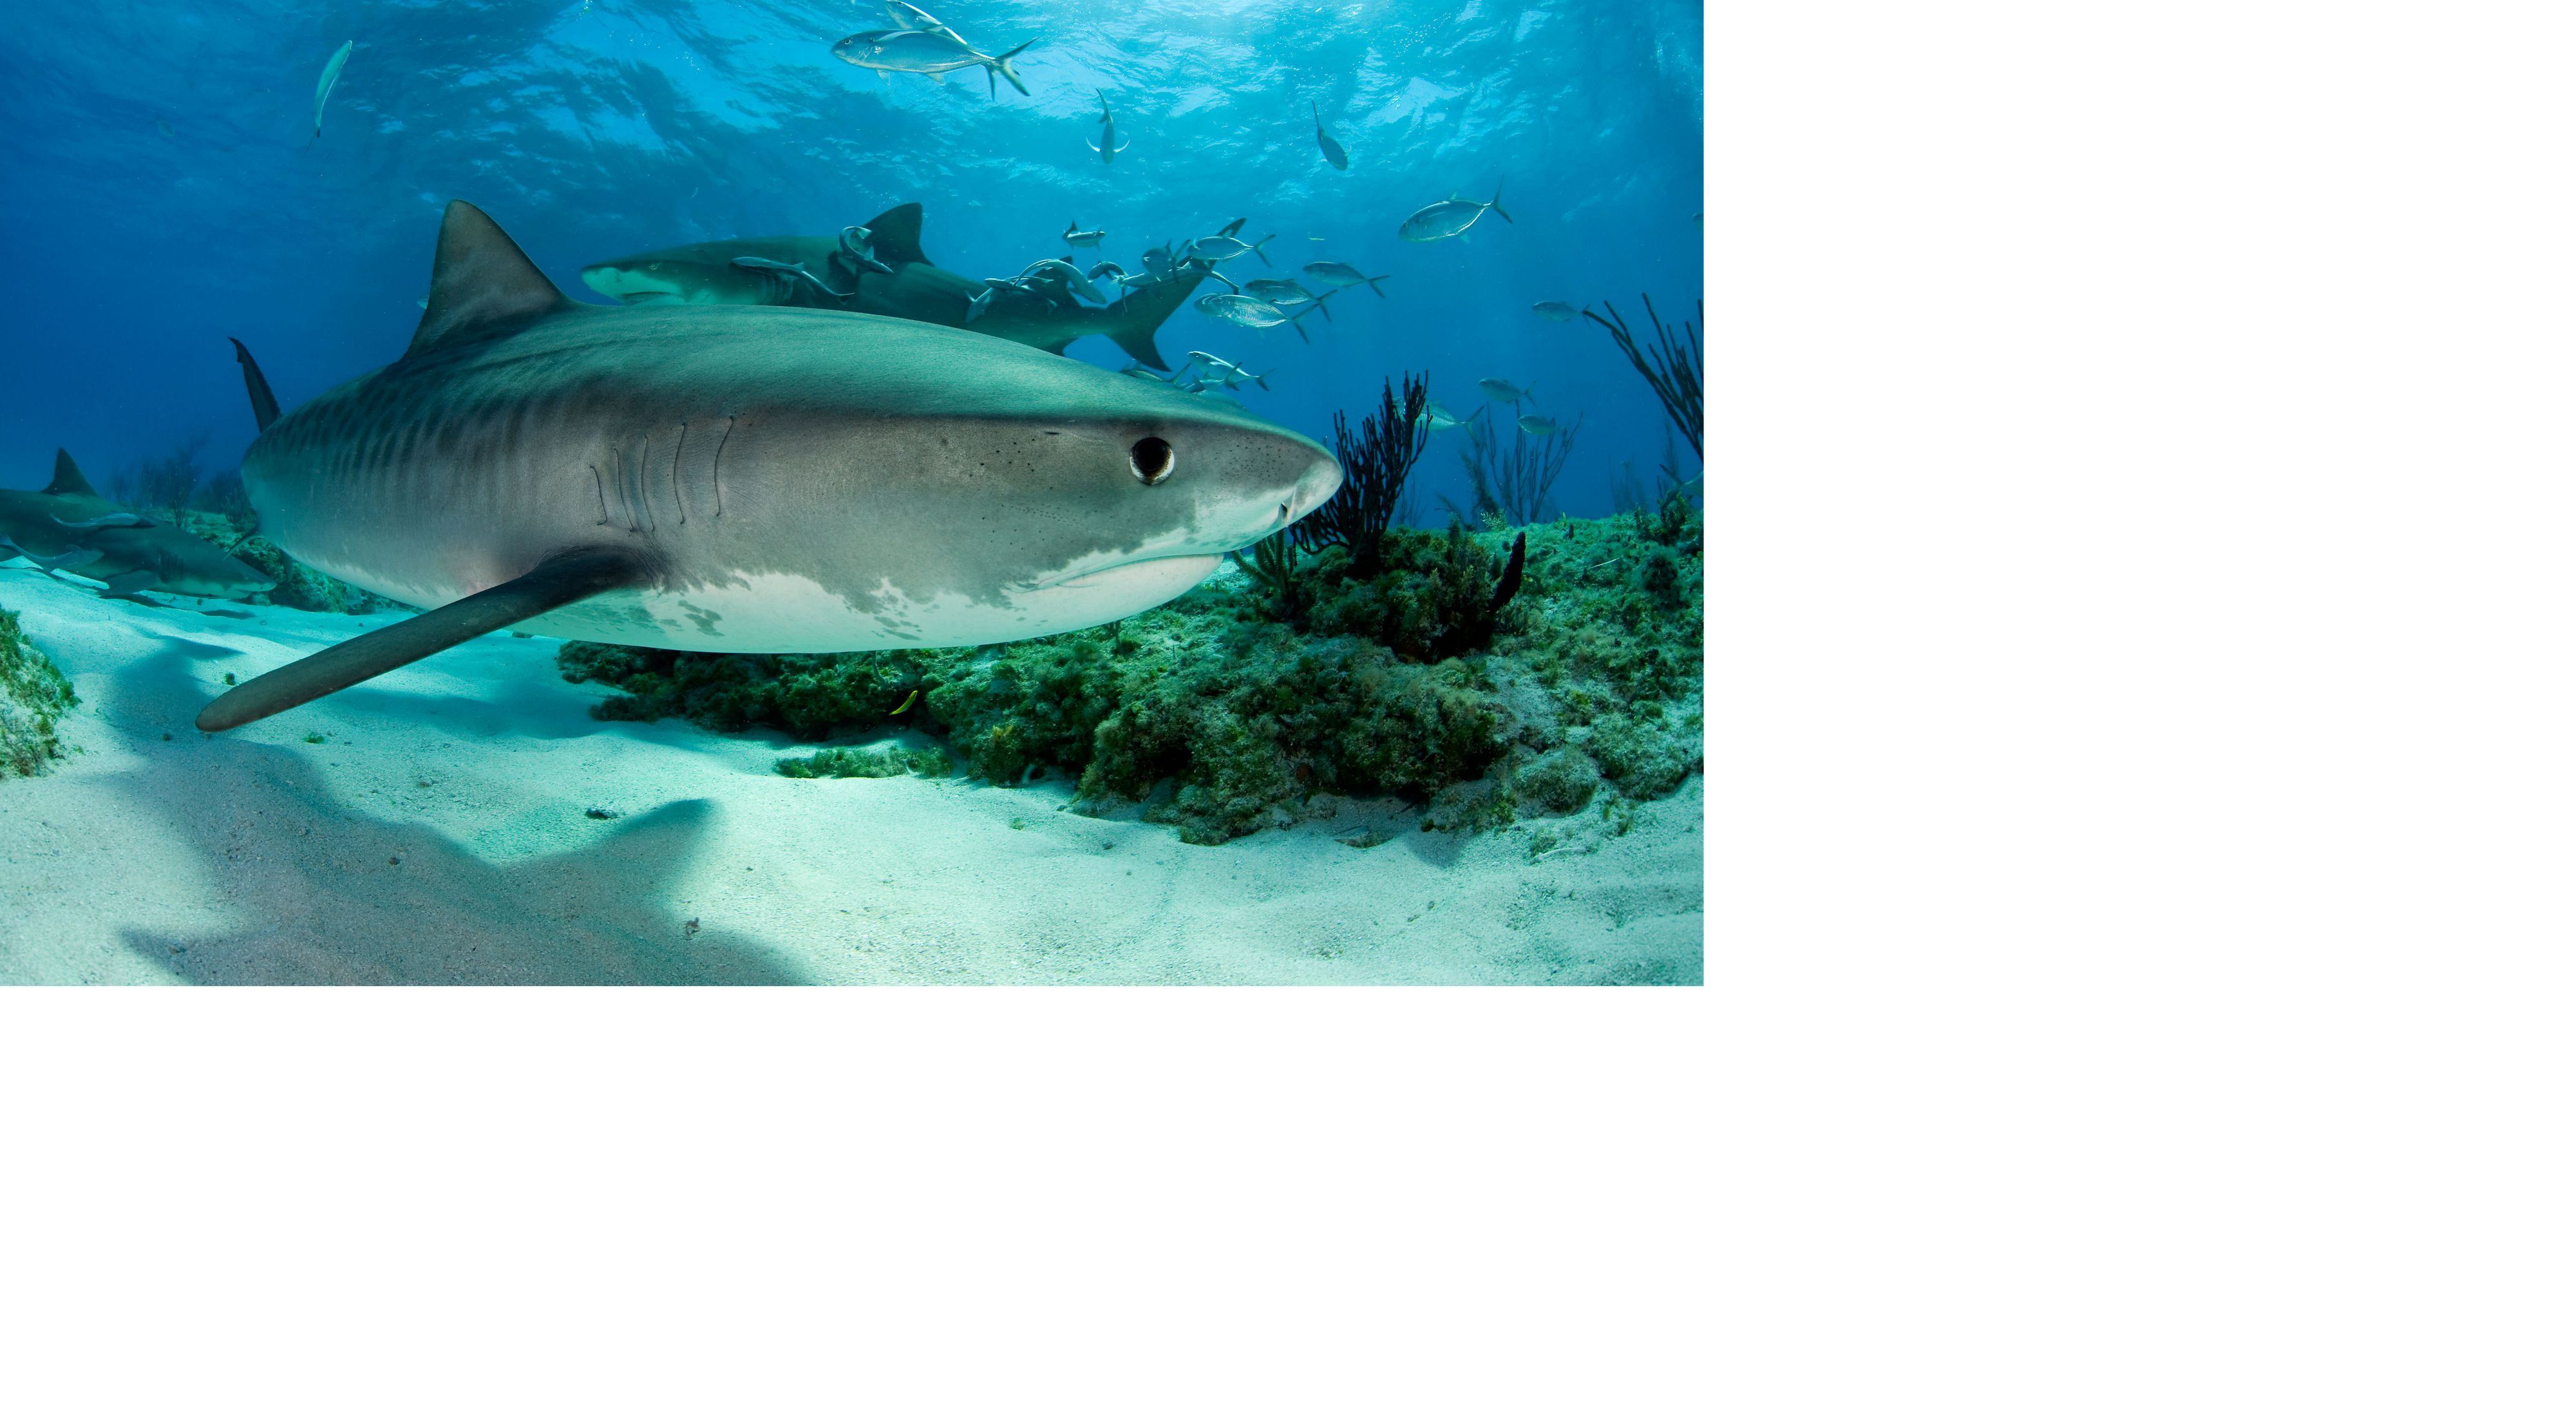 underwater side view of a shark near the bottom sand